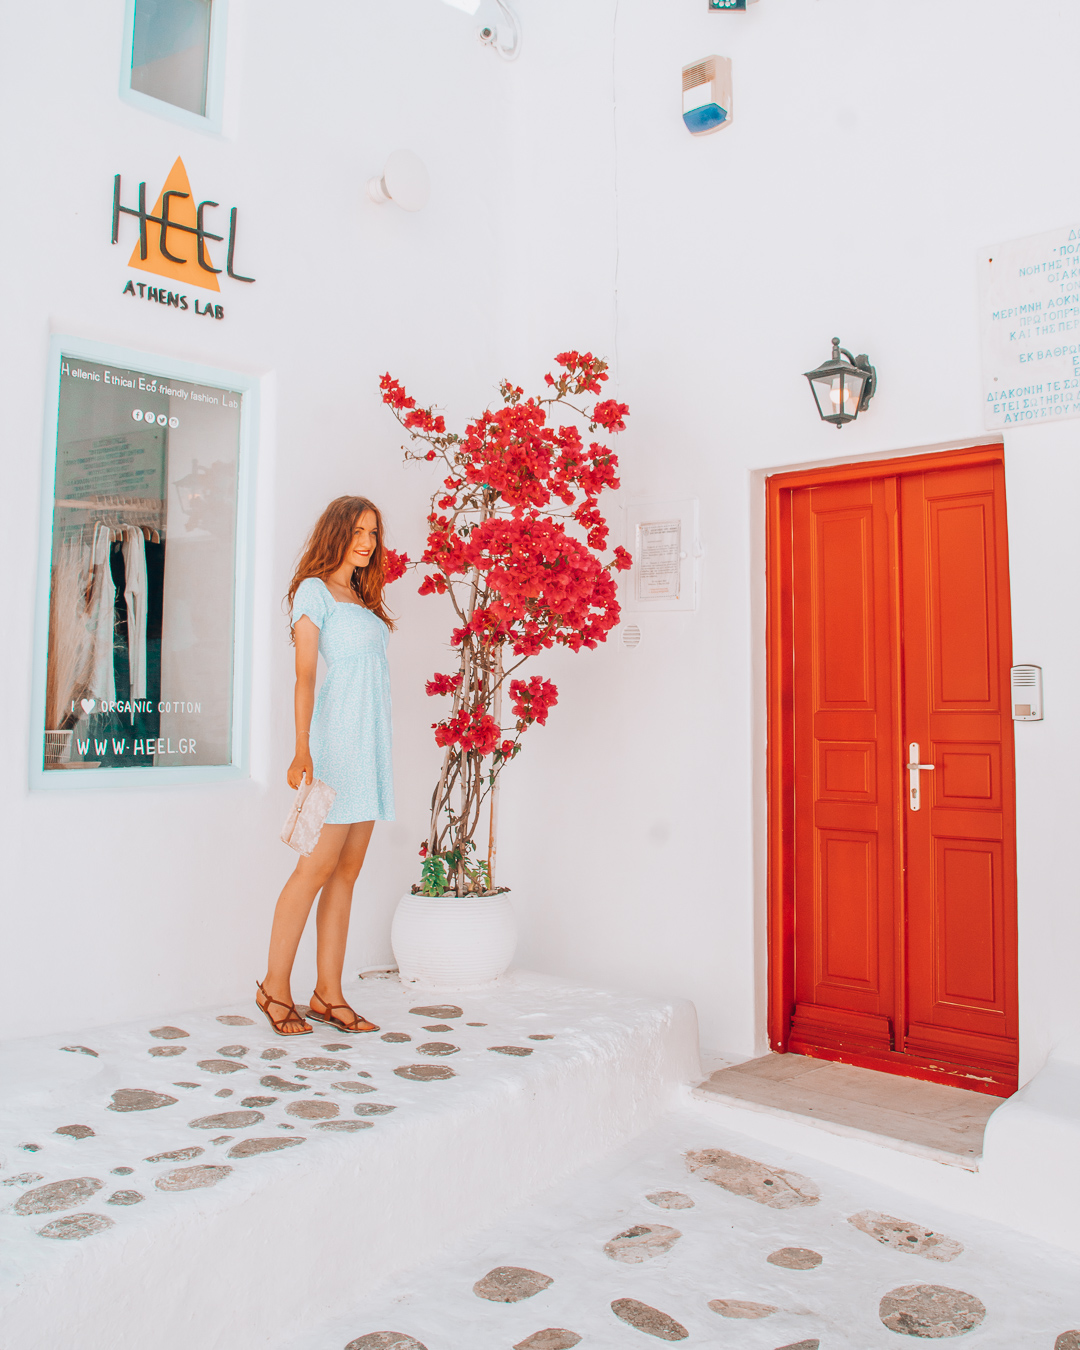 Girl in front of Heel Athens Lab in Mykonos